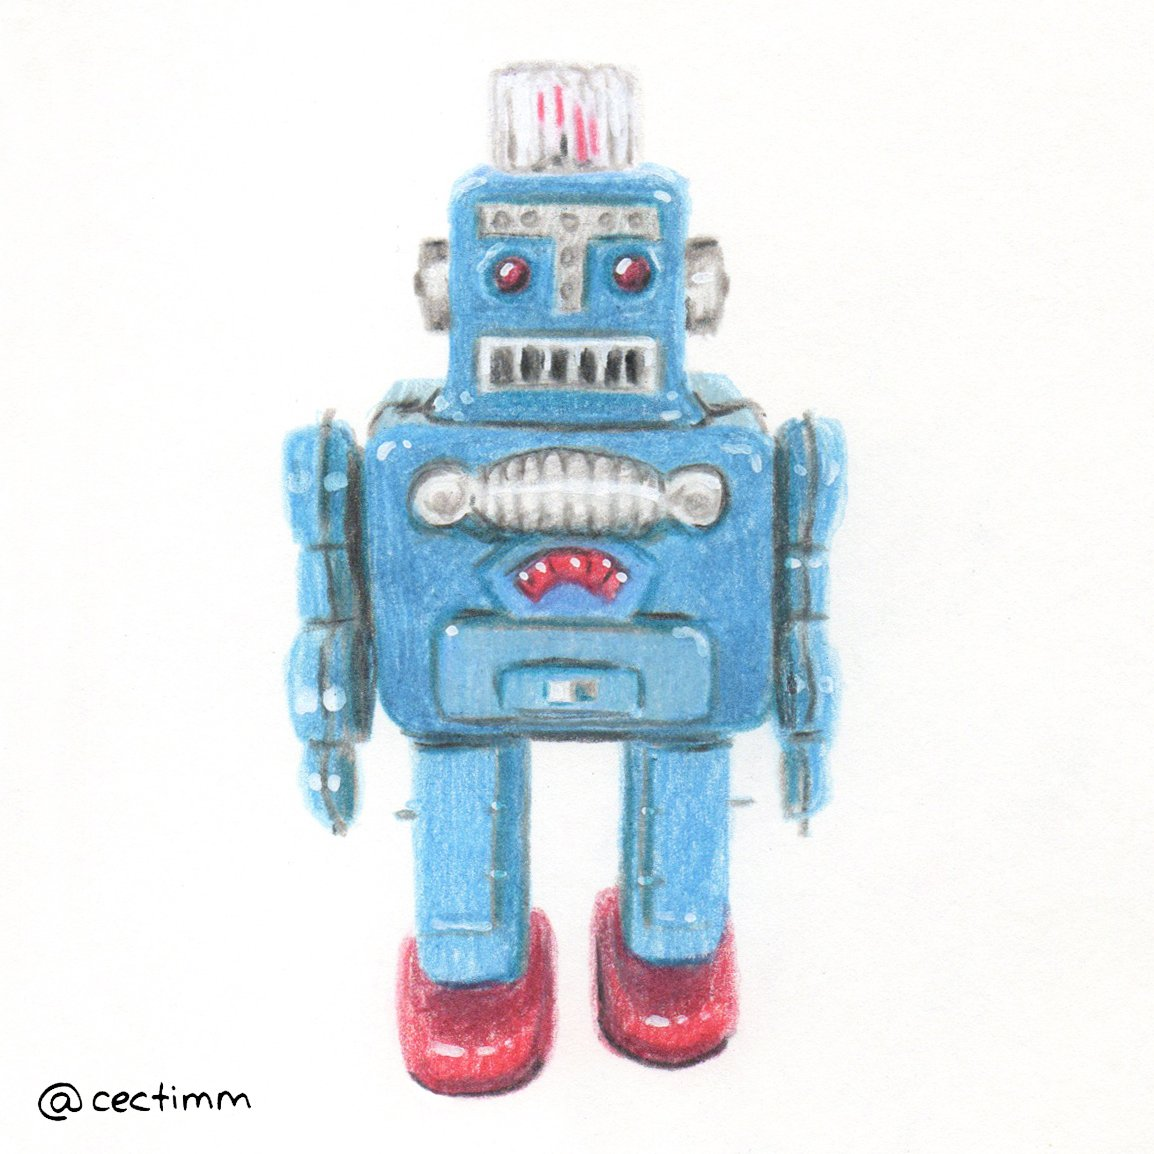 robot toys Archives - cectimm I creative conspirator